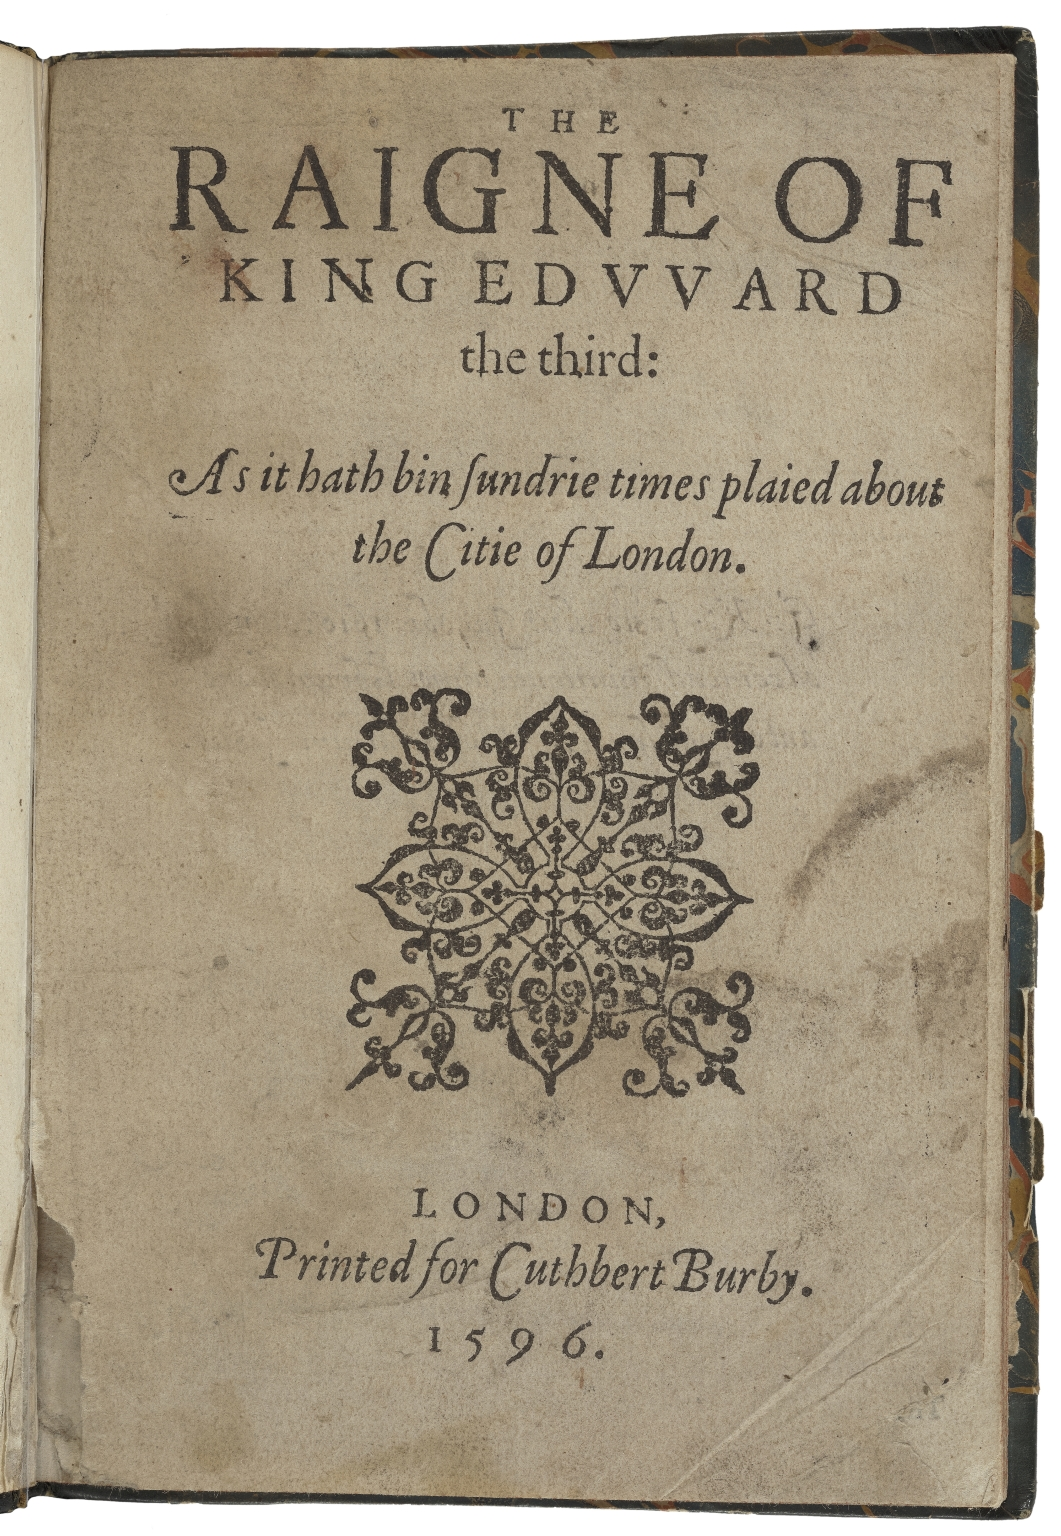 Edward III (Drama) The raigne of King Edvvard the third: as it hath bin sundrie times plaied about the citie of London.